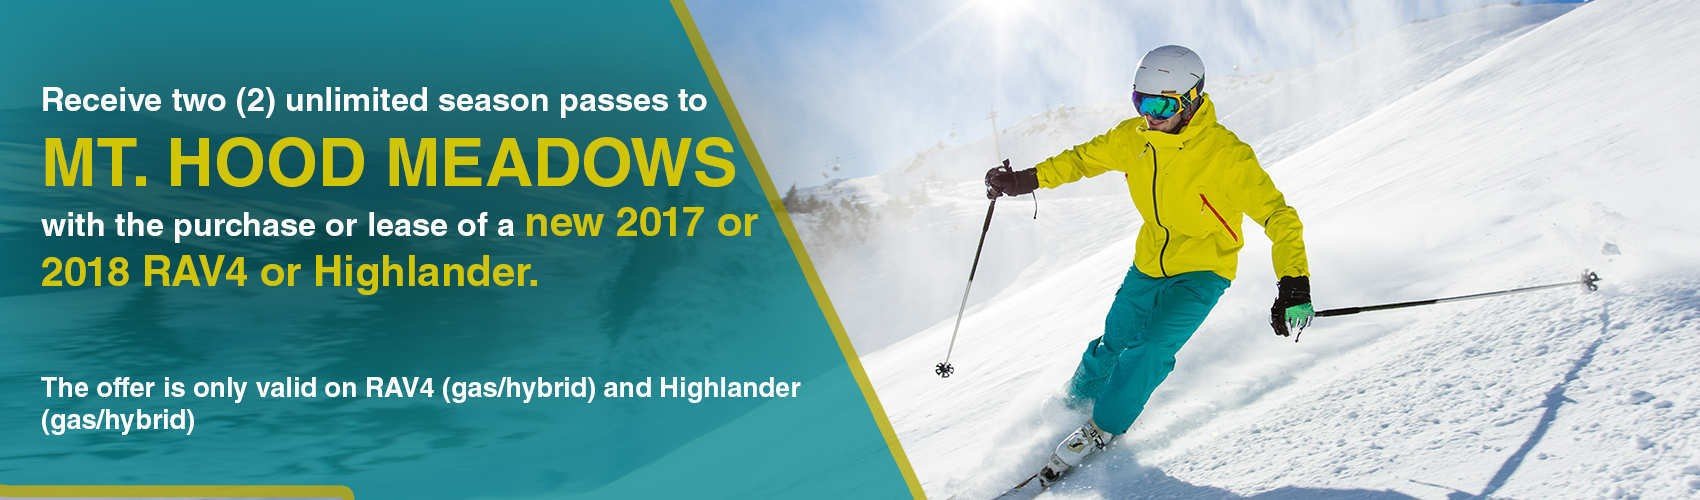 Receive 2 tickets unlimited season passes to Mt. Hood Meadows brought to you by Beaverton Toyota